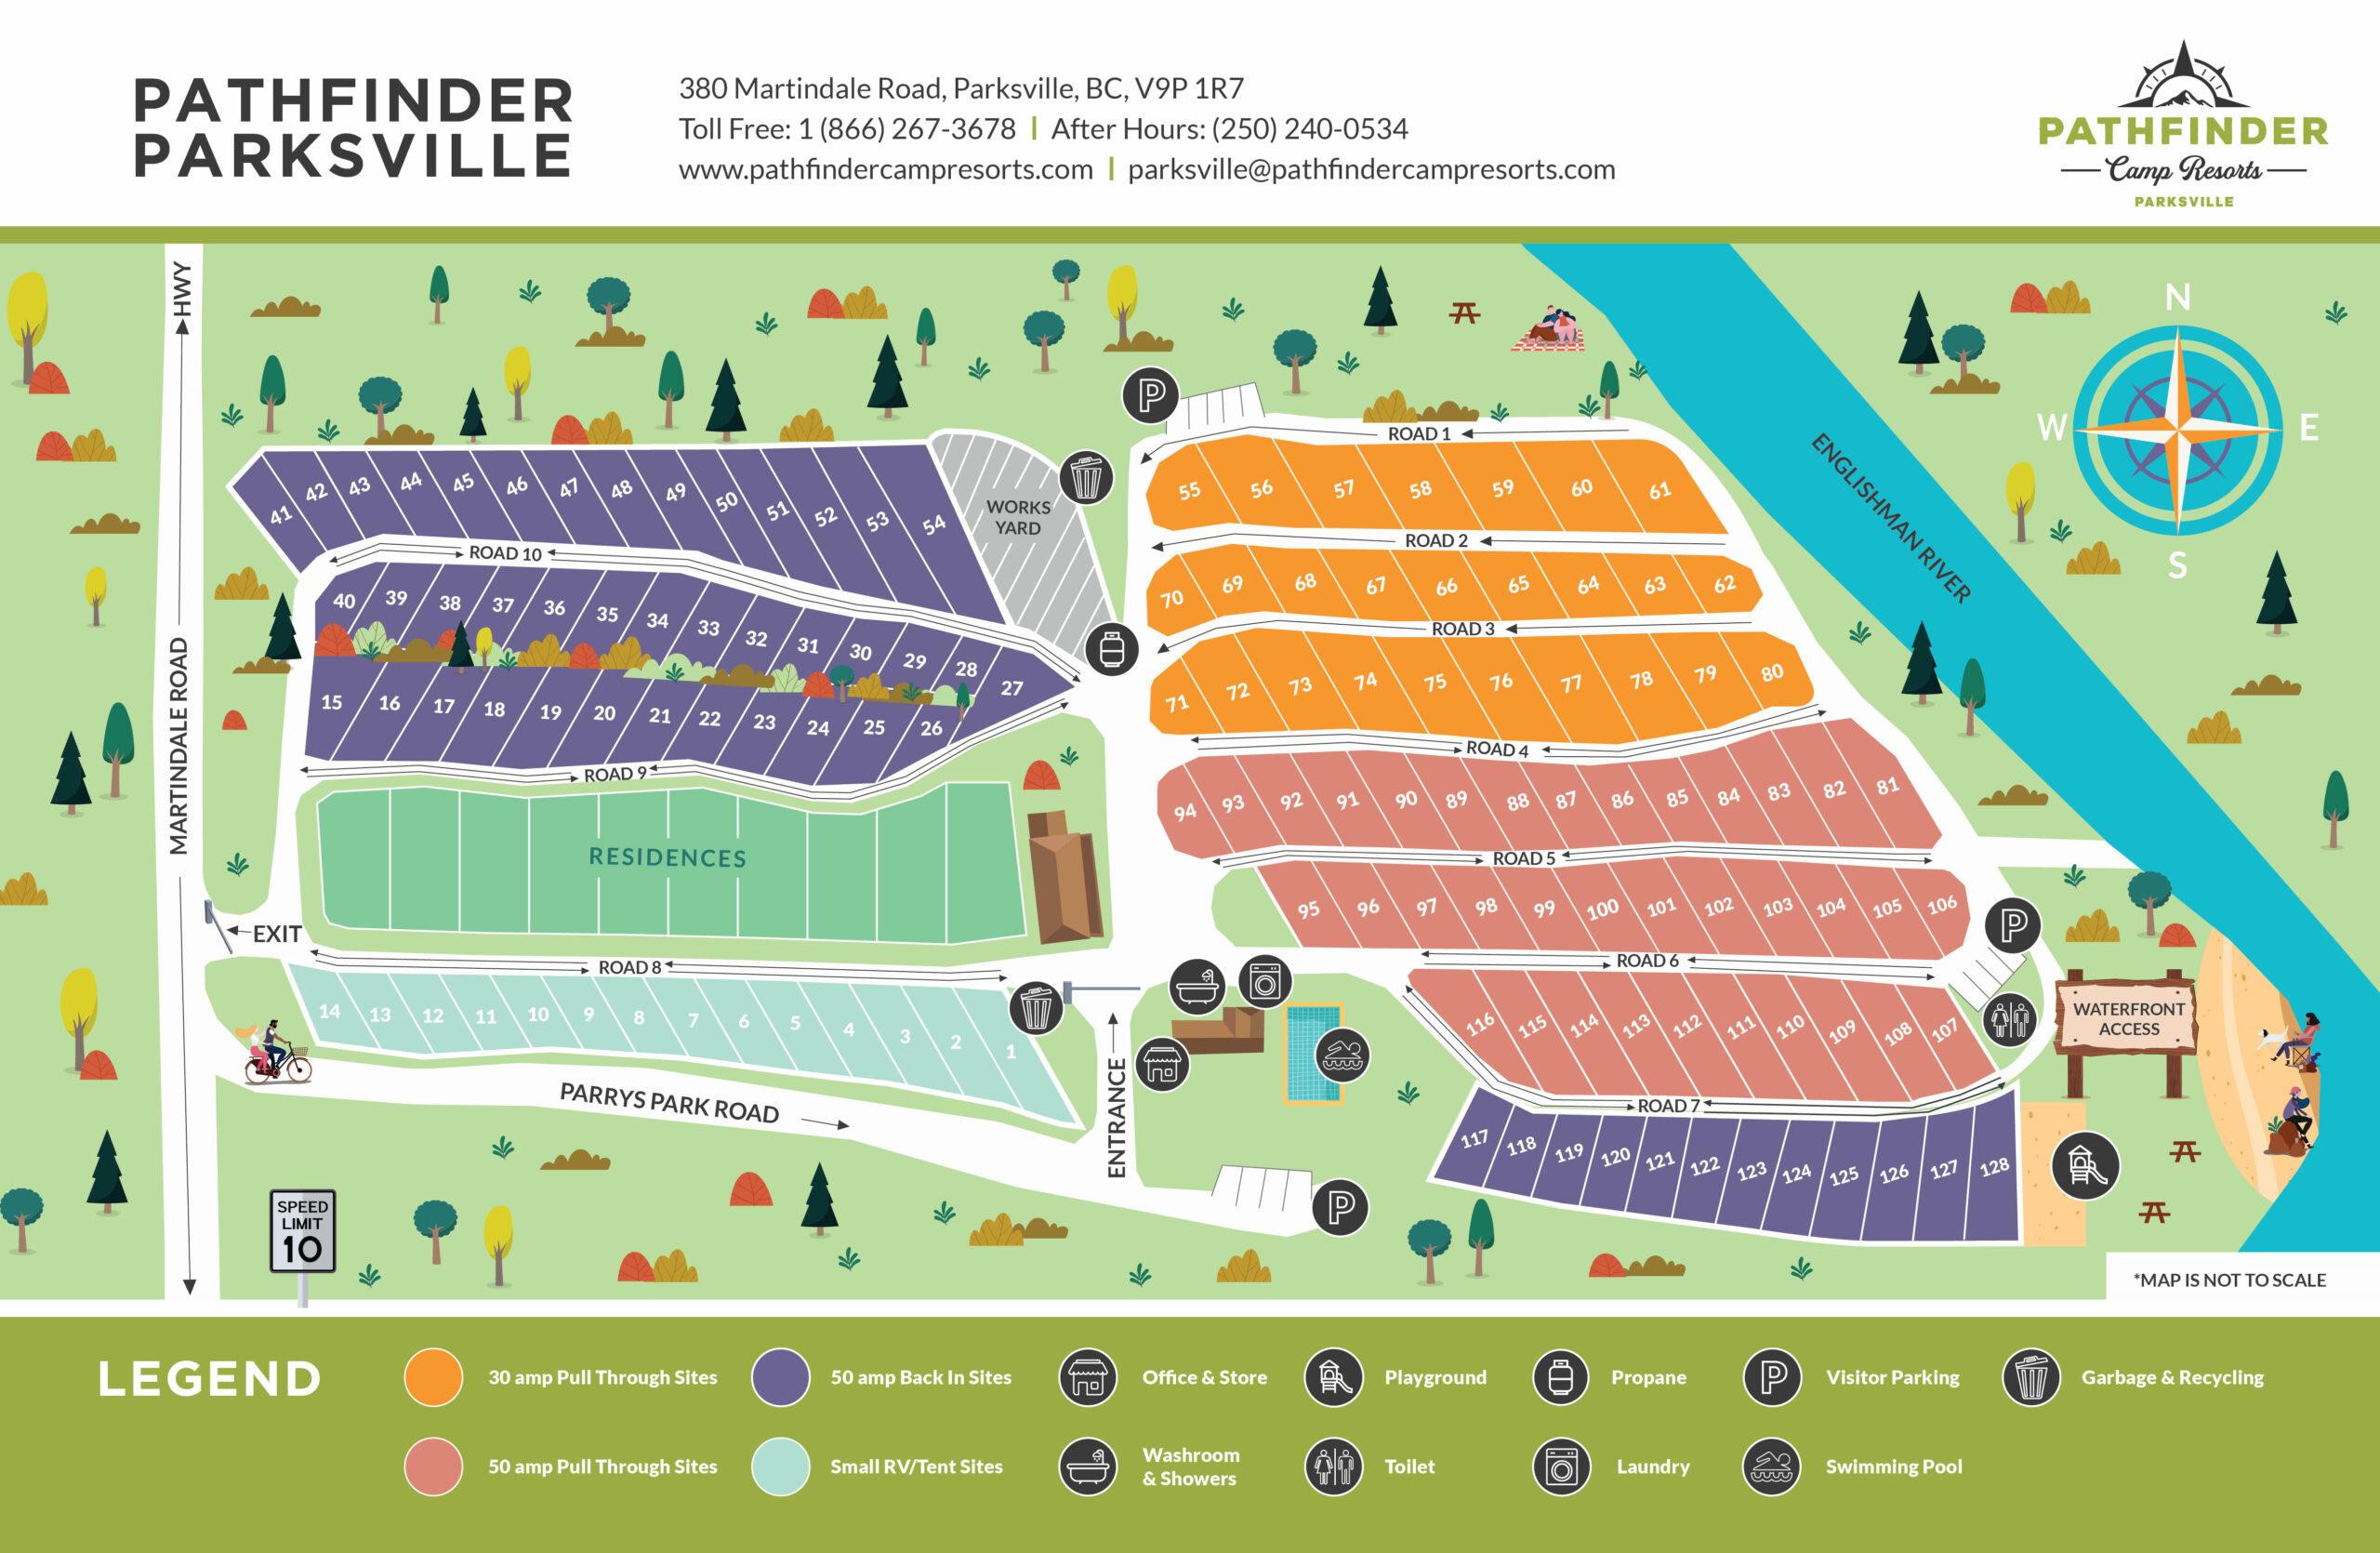 Pathfinder Parksville Site Map 2021